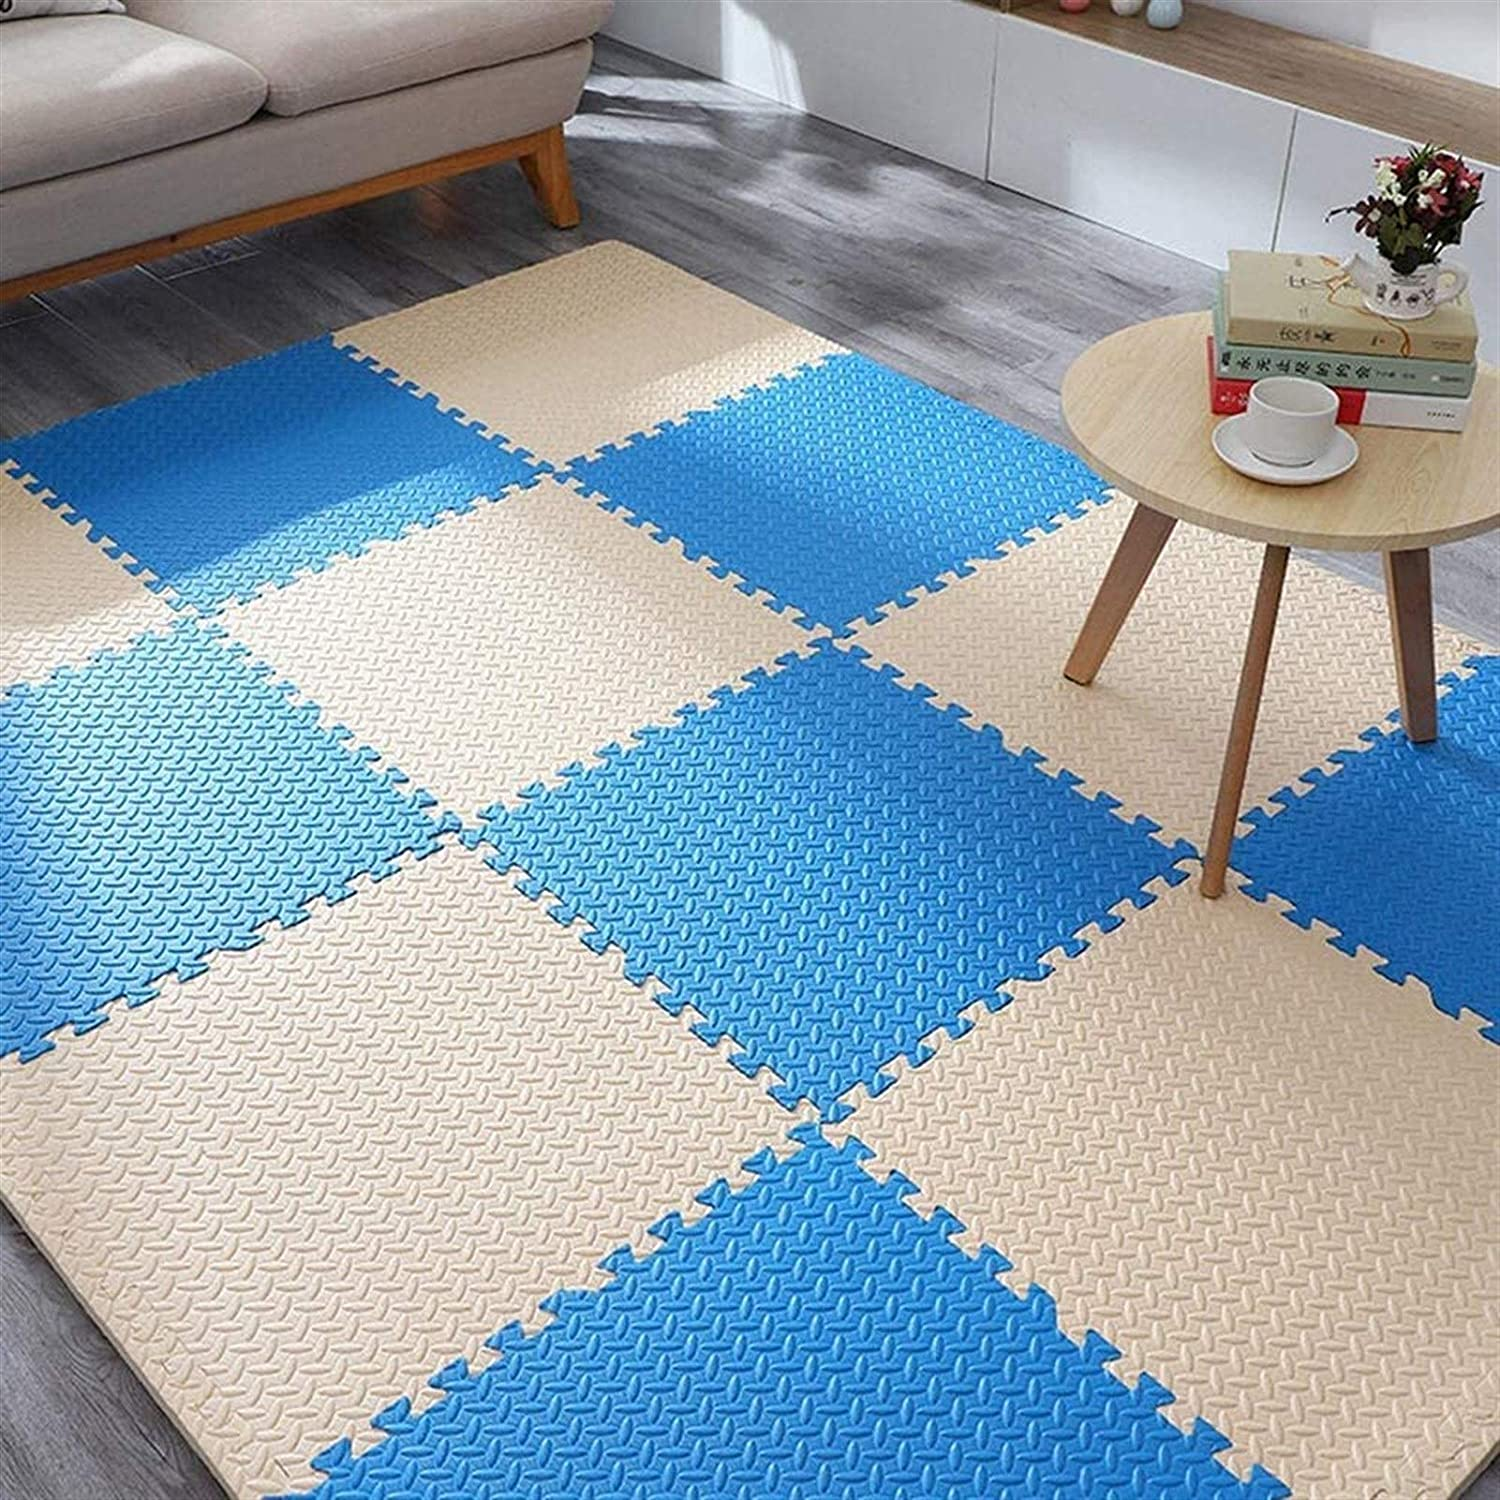 Puzzle Play Mats Versatile Foam Durable And Max 49% OFF Popular brand in the world Offering Tough